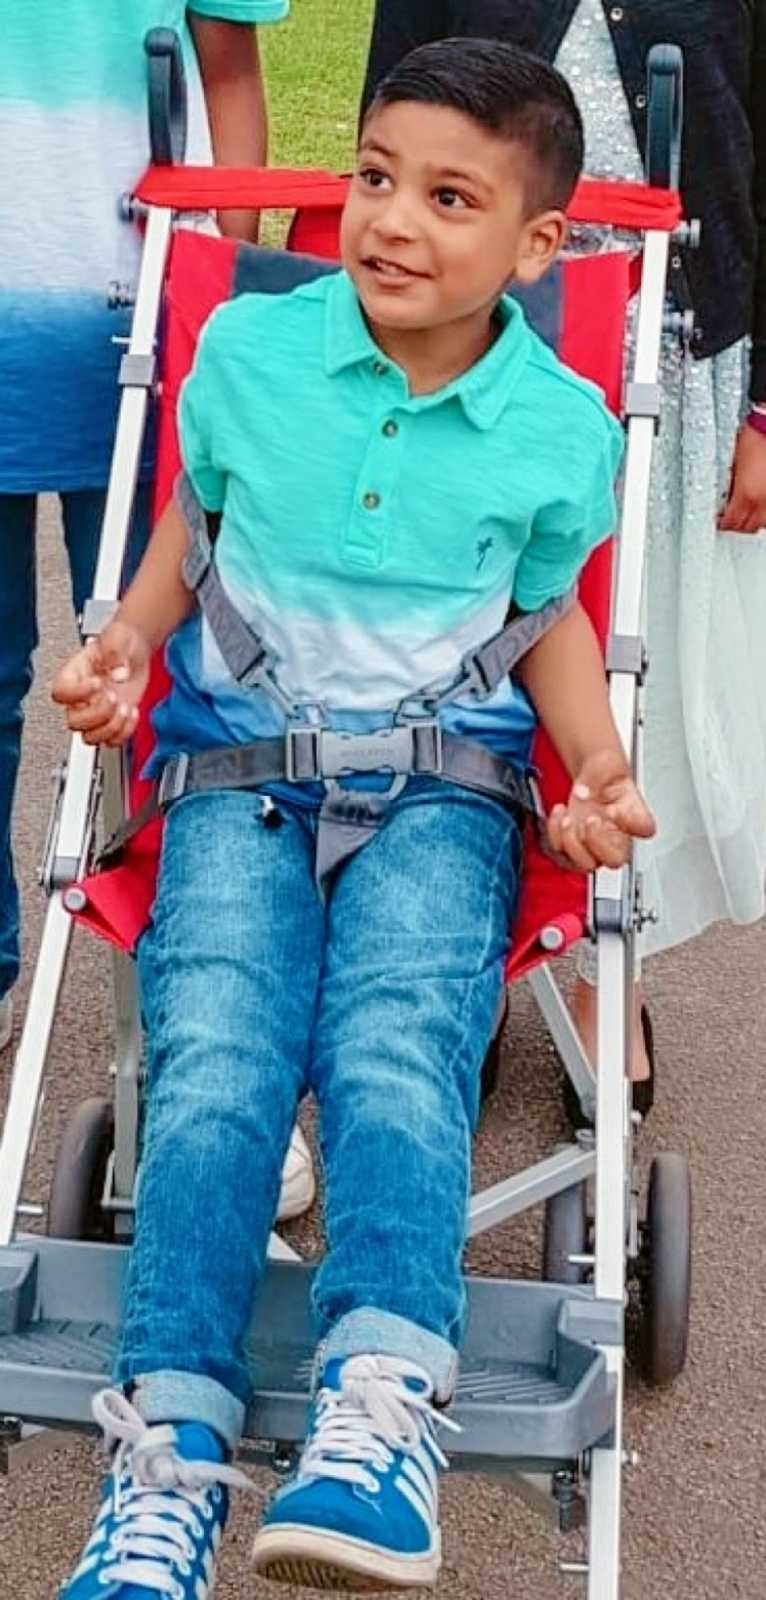 A boy with nonverbal autism sits in a stroller